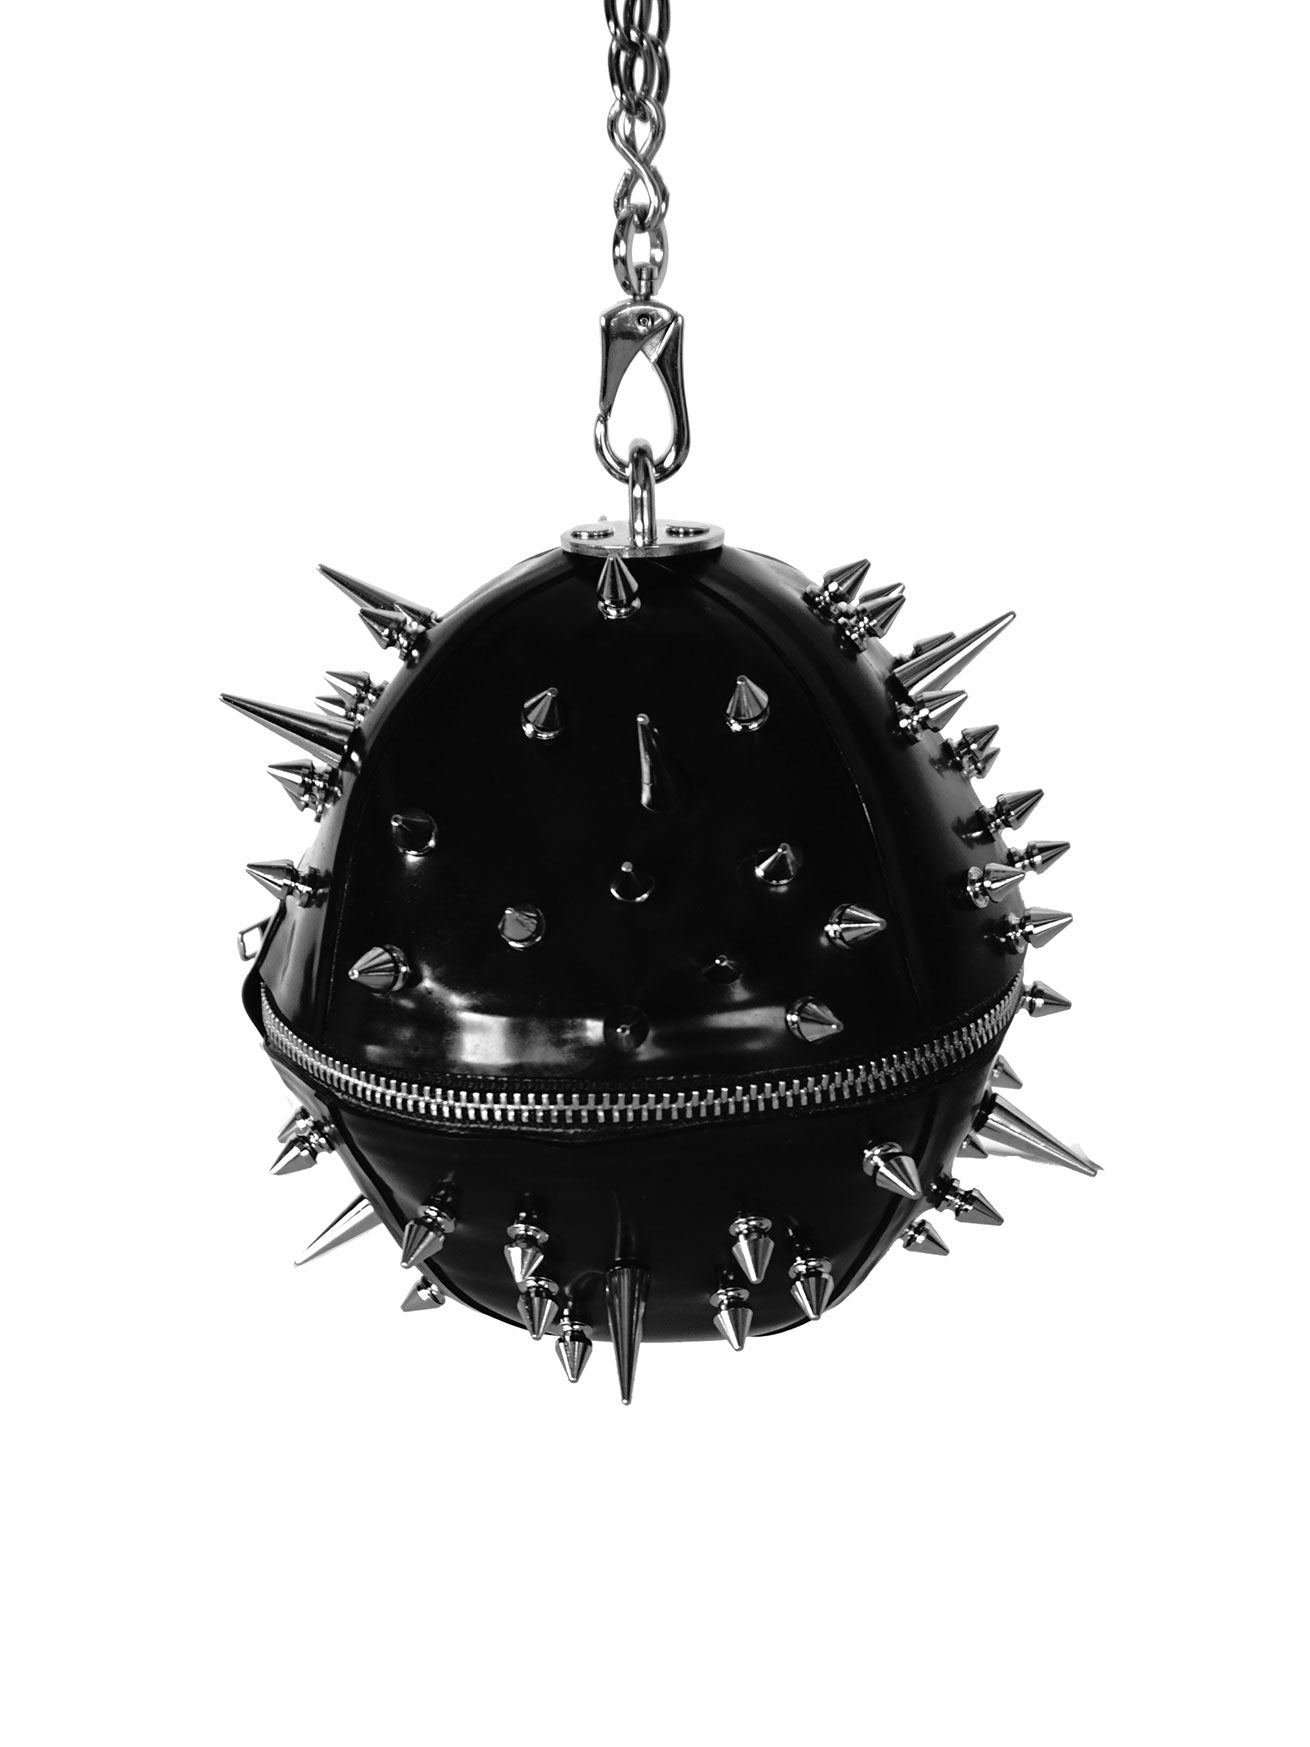 Spiked Rubber Bag